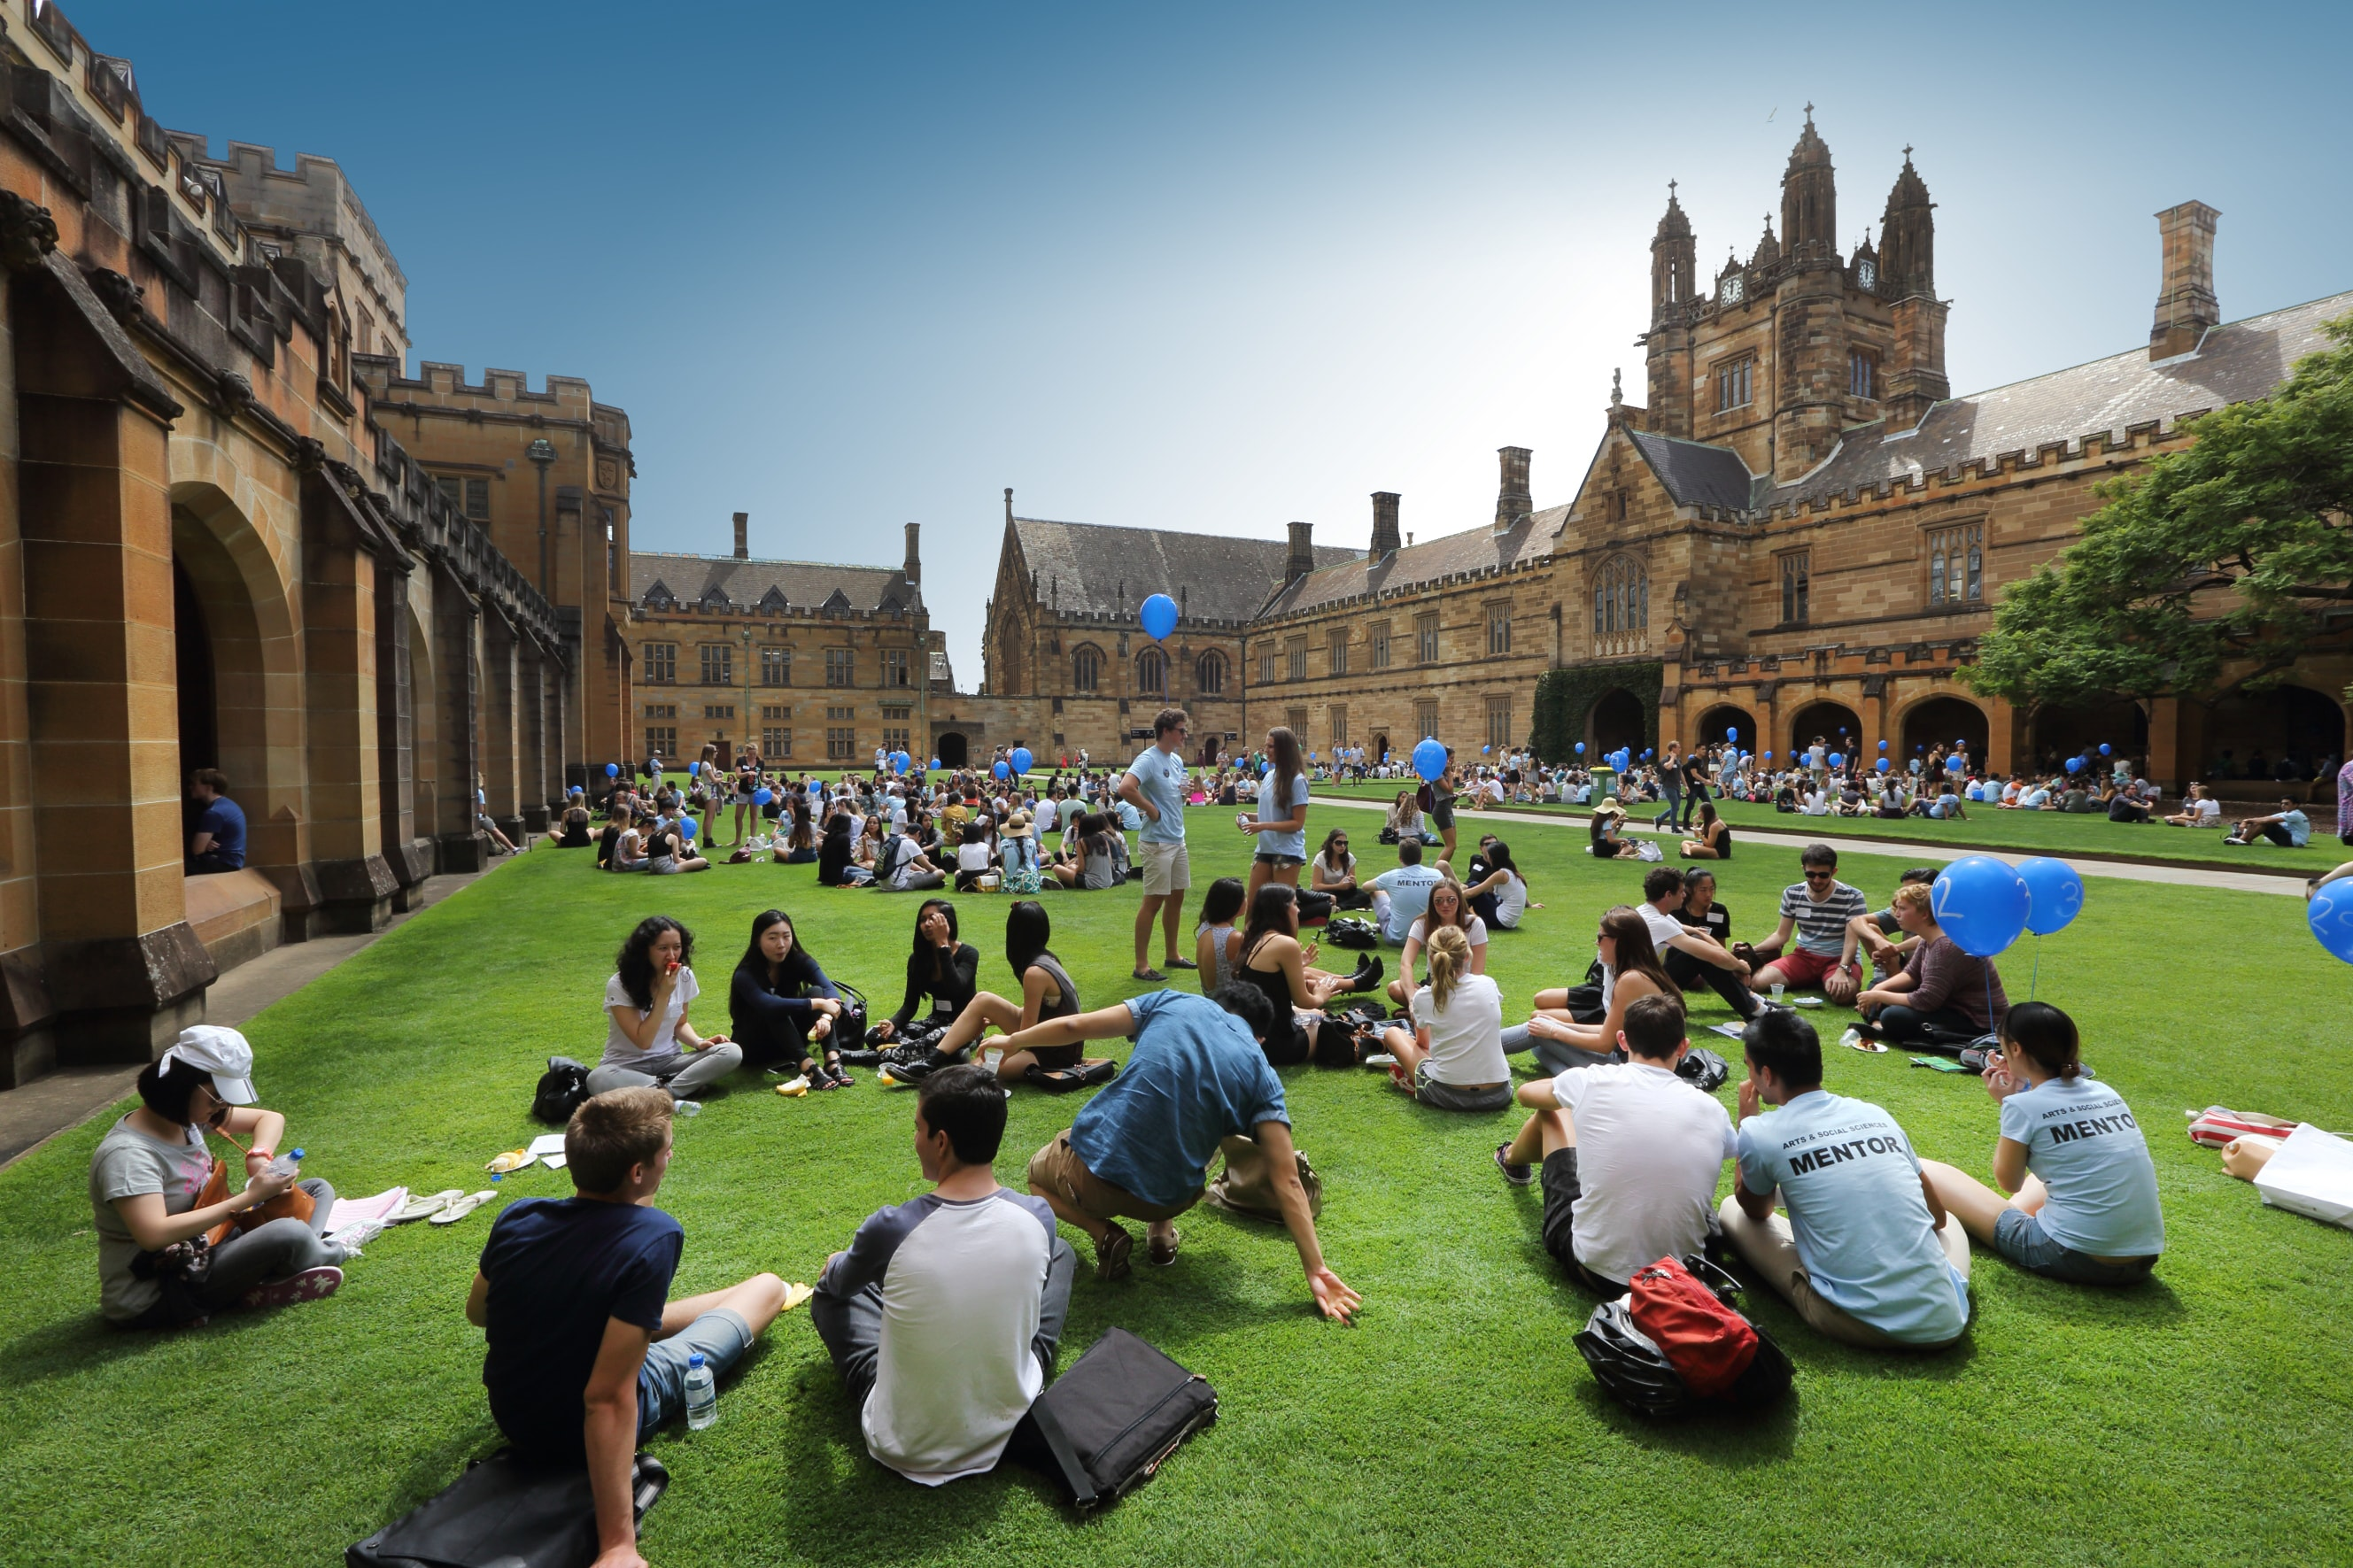 Student support and development - The University of Sydney Law School